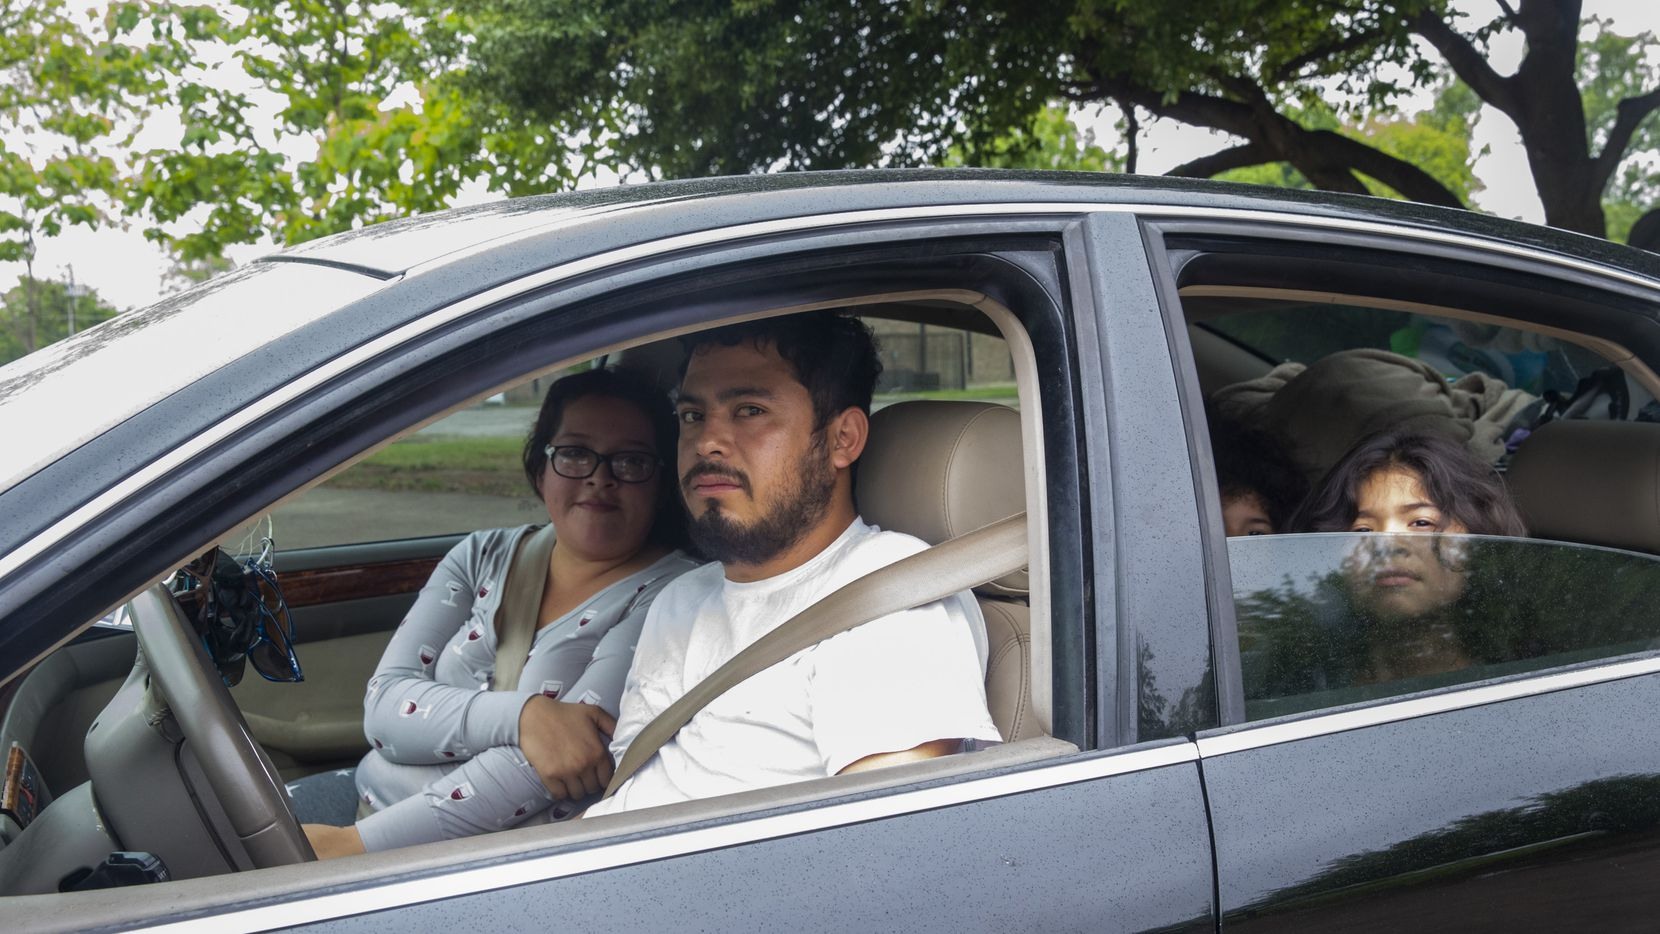 Carlos and Maria Sanchez pose for a portrait in their car at Holy Cross Catholic Church in South Dallas. The Sanchez family had just missed receiving food from a mobile food distribution organized by Catholic Charities. Since the beginning of the coronavirus pandemic, they have relied on the single income of Maria's father, who works at Subway.